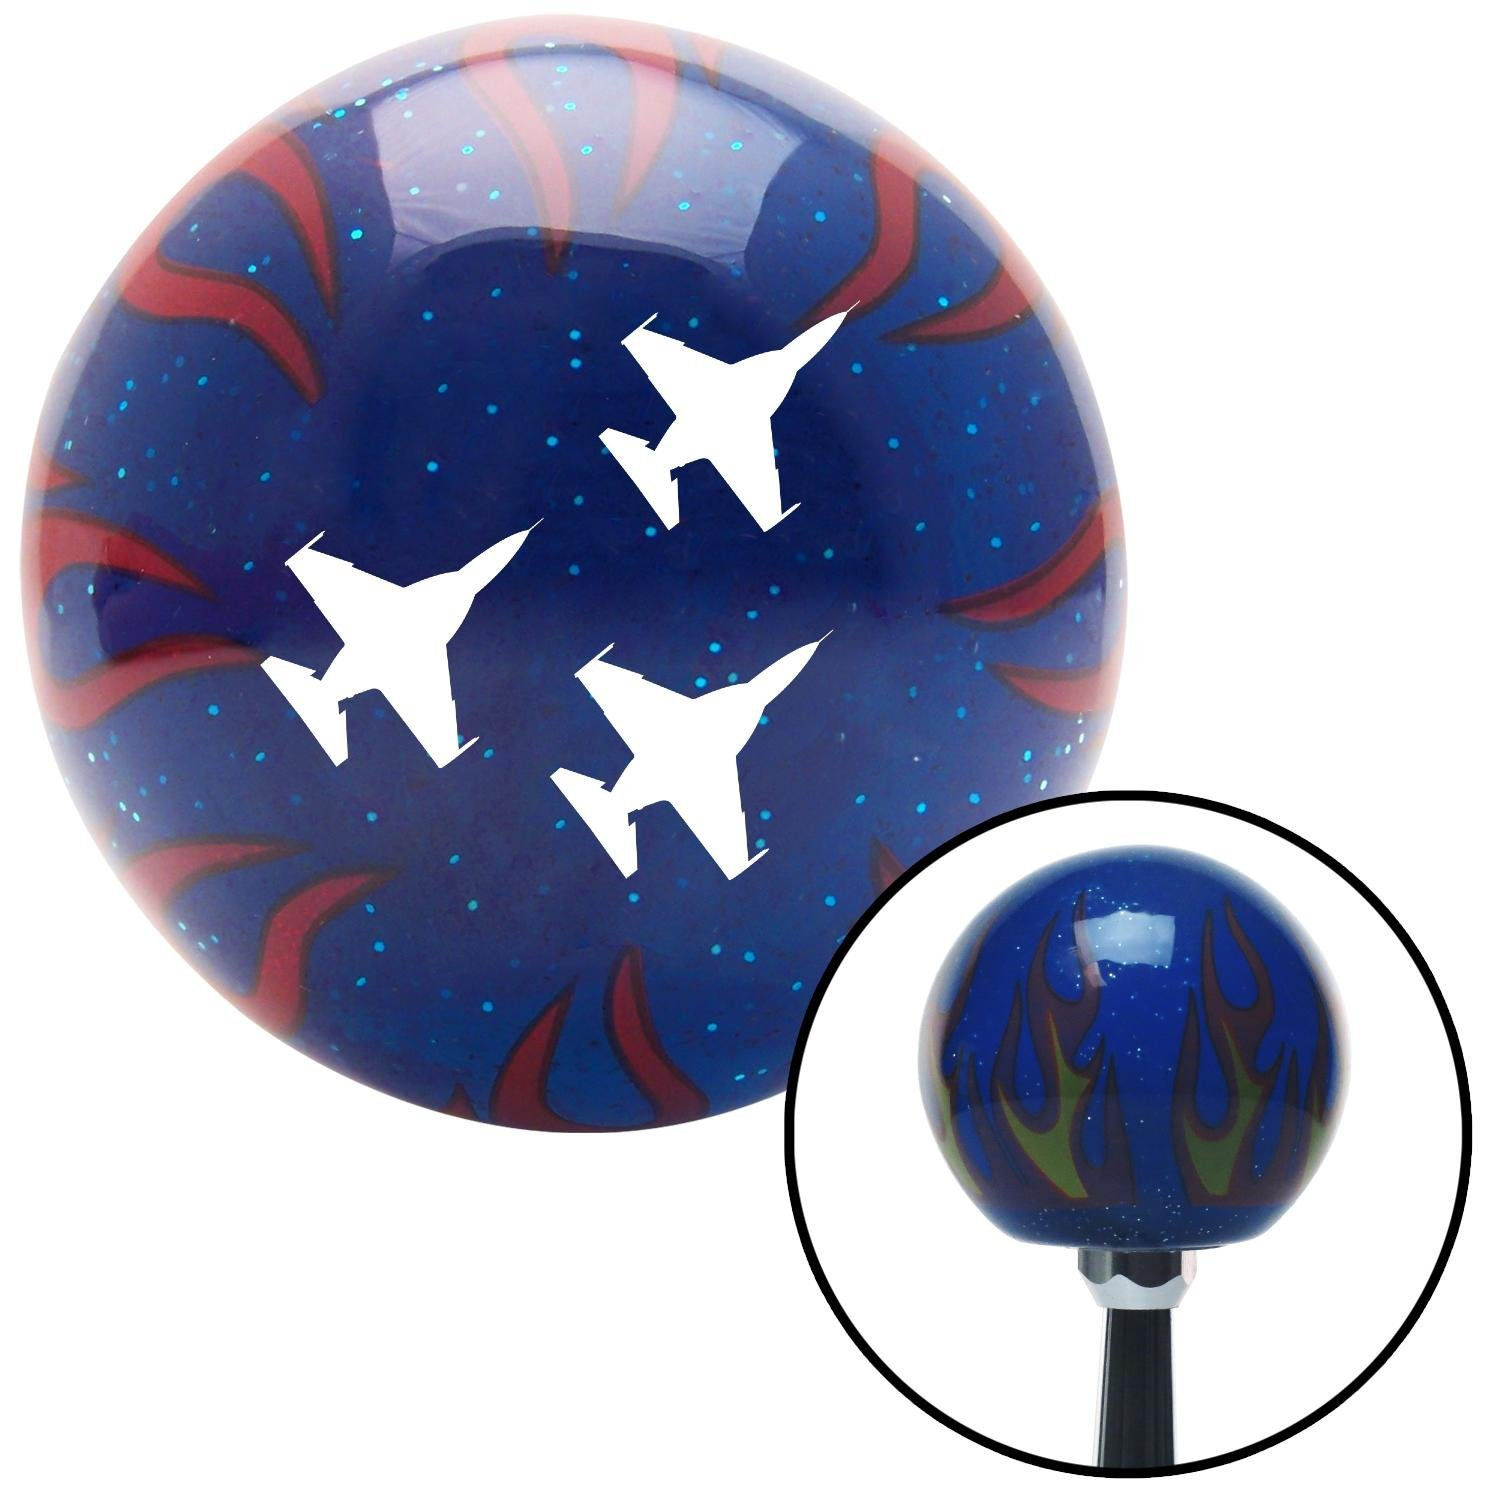 White Jets American Shifter 250102 Blue Flame Metal Flake Shift Knob with M16 x 1.5 Insert